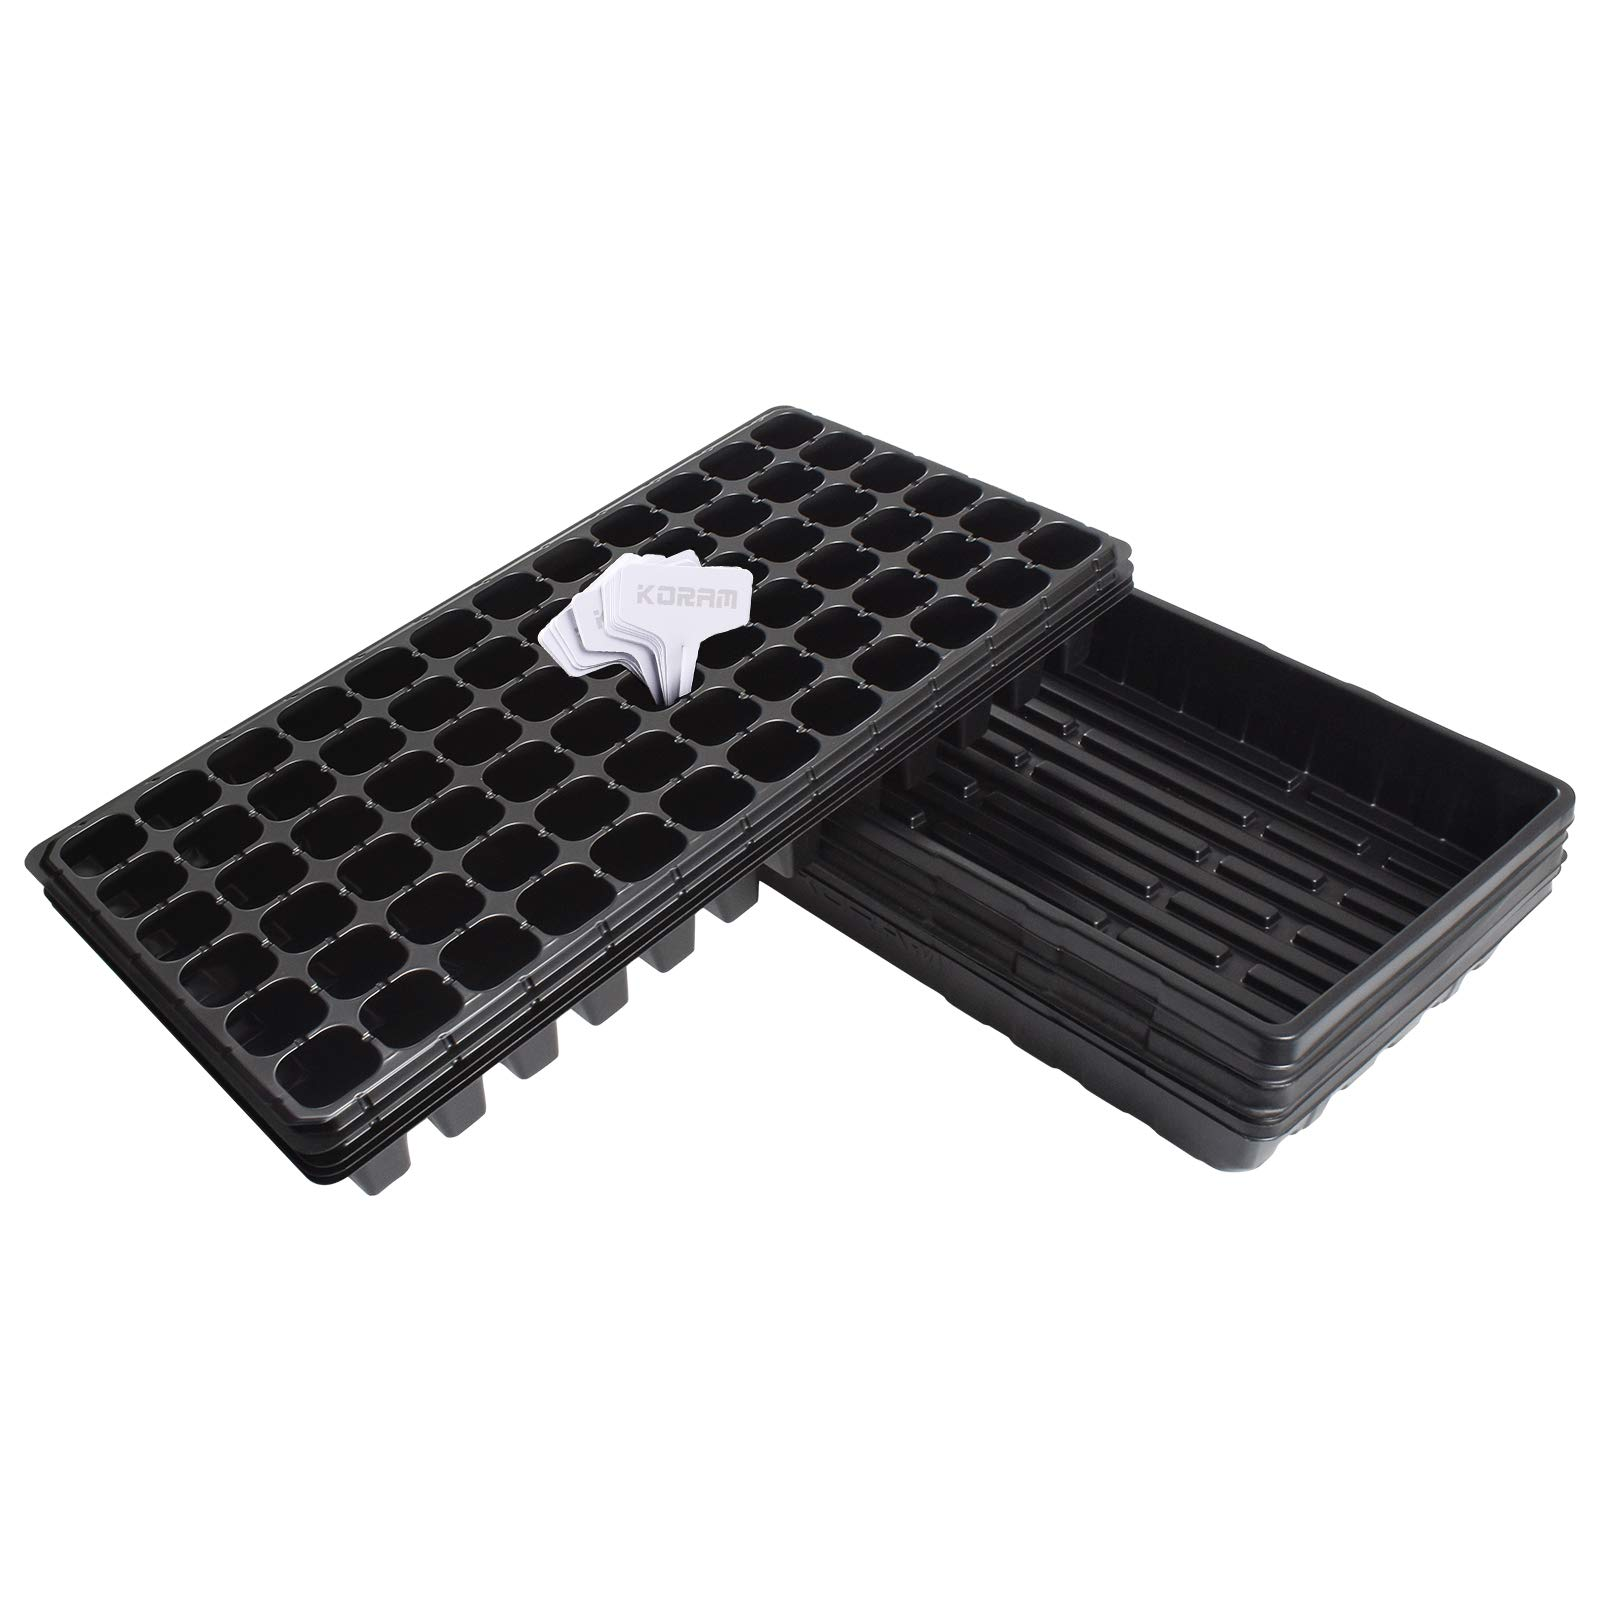 KORAM Seedling Starter Tray - 5 Pack Combo - Seed Germination Kit with Flats & 72 Cell Trays for Planting Seedlings, Propagation, Germination Plugs, Wheatgrass, Microgreens by KORAM